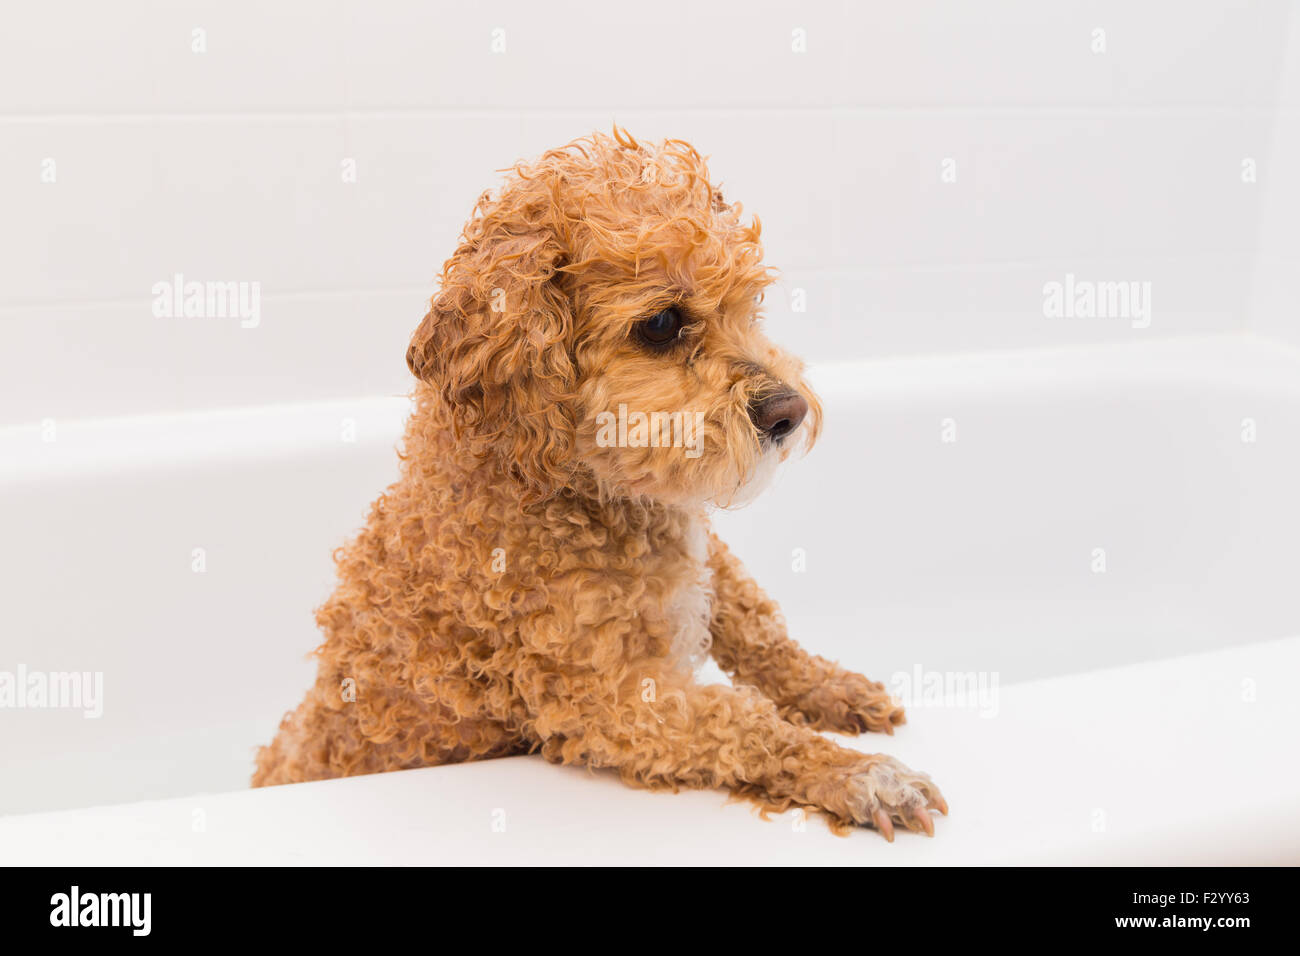 Primo Bagno Cane White Wet Poodle Dog In Immagini White Wet Poodle Dog In Fotos